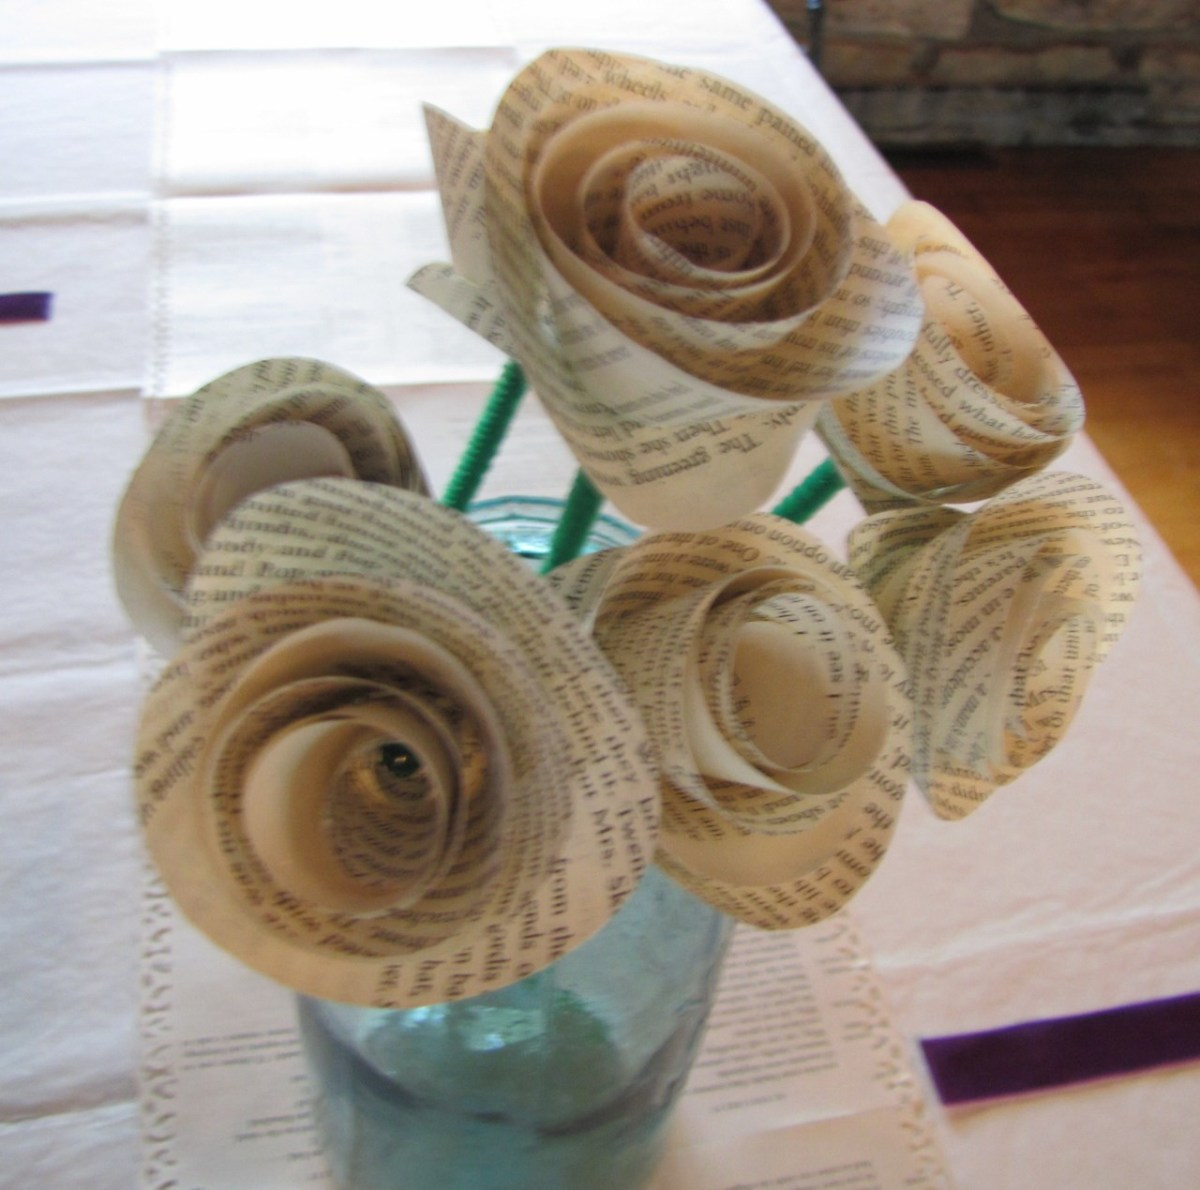 My niece, a librarian, had a book themed wedding, since she is a librarian. The runners down the center of the tables were book pages with artful edges (scrapbooking technique) and she made roses from book pages for centerpieces.